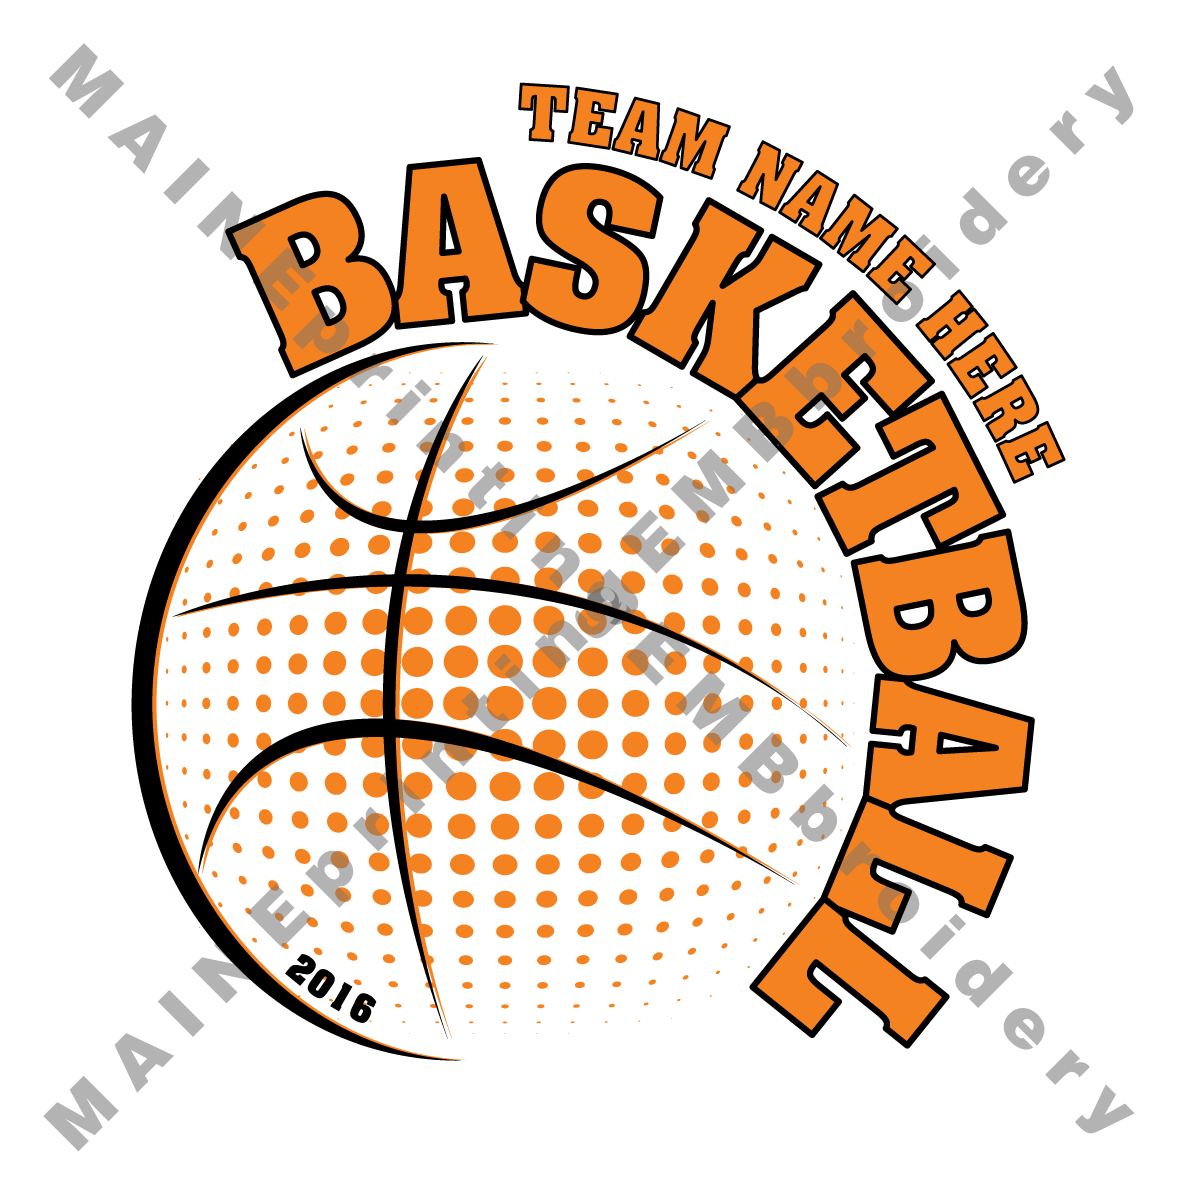 Basketball T Shirt Design Ideas 1000 images about shirt ideas on pinterest basketball memphis tigers and basketball teams Basketball Shirt Design